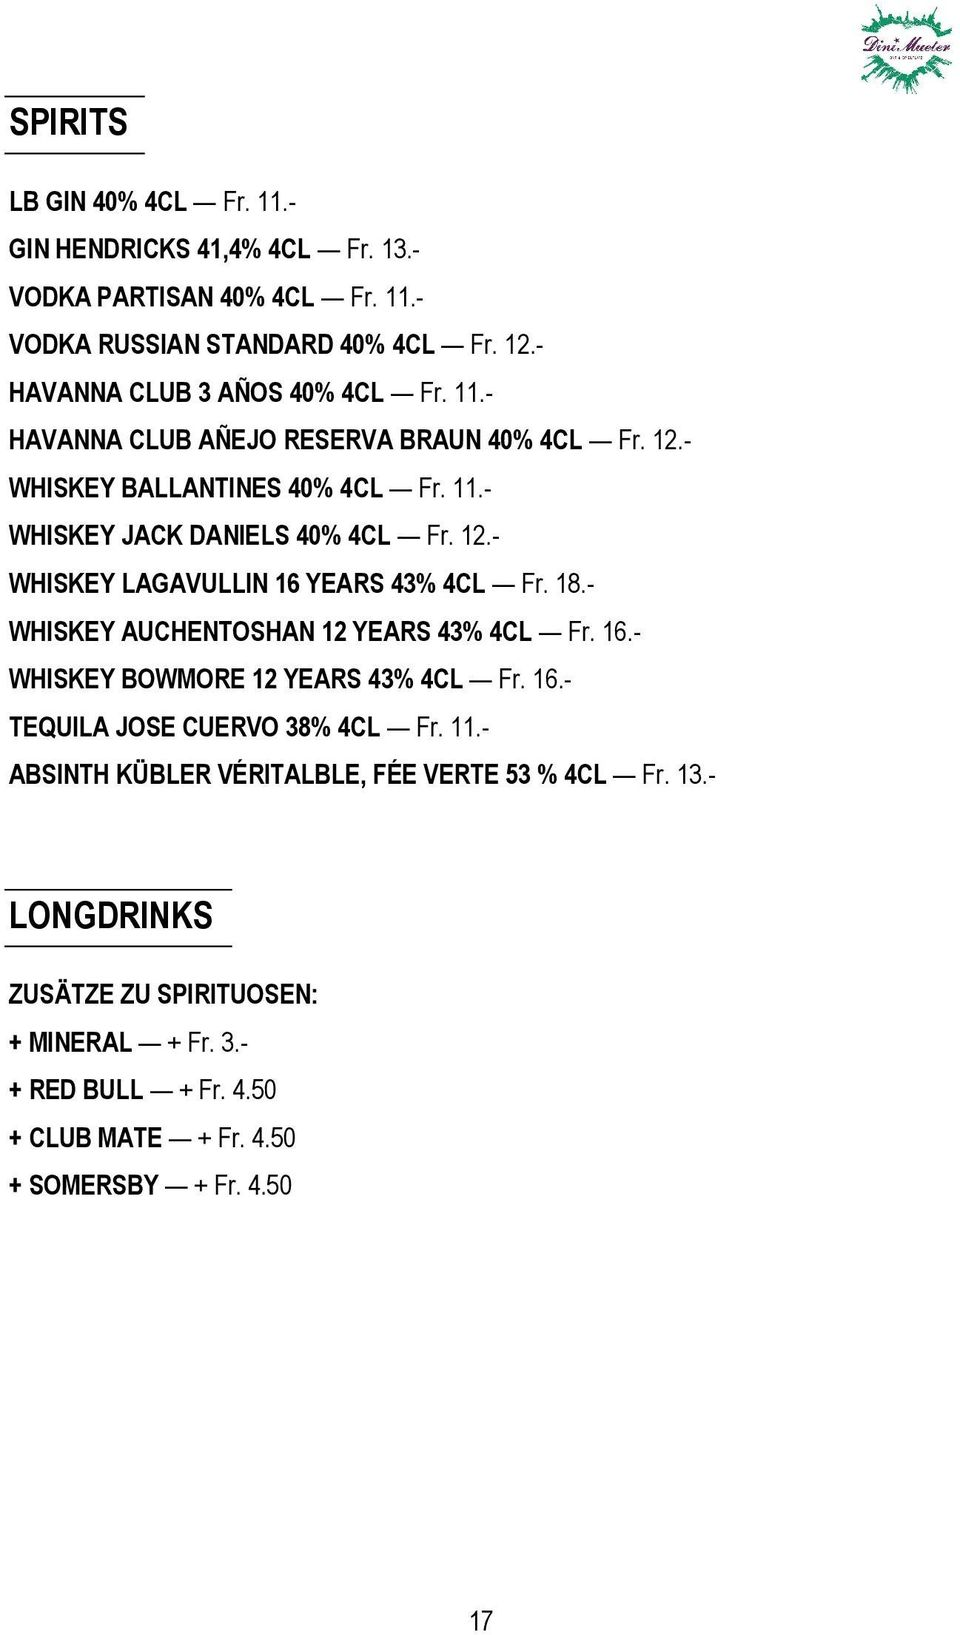 18.- WHISKEY AUCHENTOSHAN 12 YEARS 43% 4CL Fr. 16.- WHISKEY BOWMORE 12 YEARS 43% 4CL Fr. 16.- TEQUILA JOSE CUERVO 38% 4CL Fr. 11.